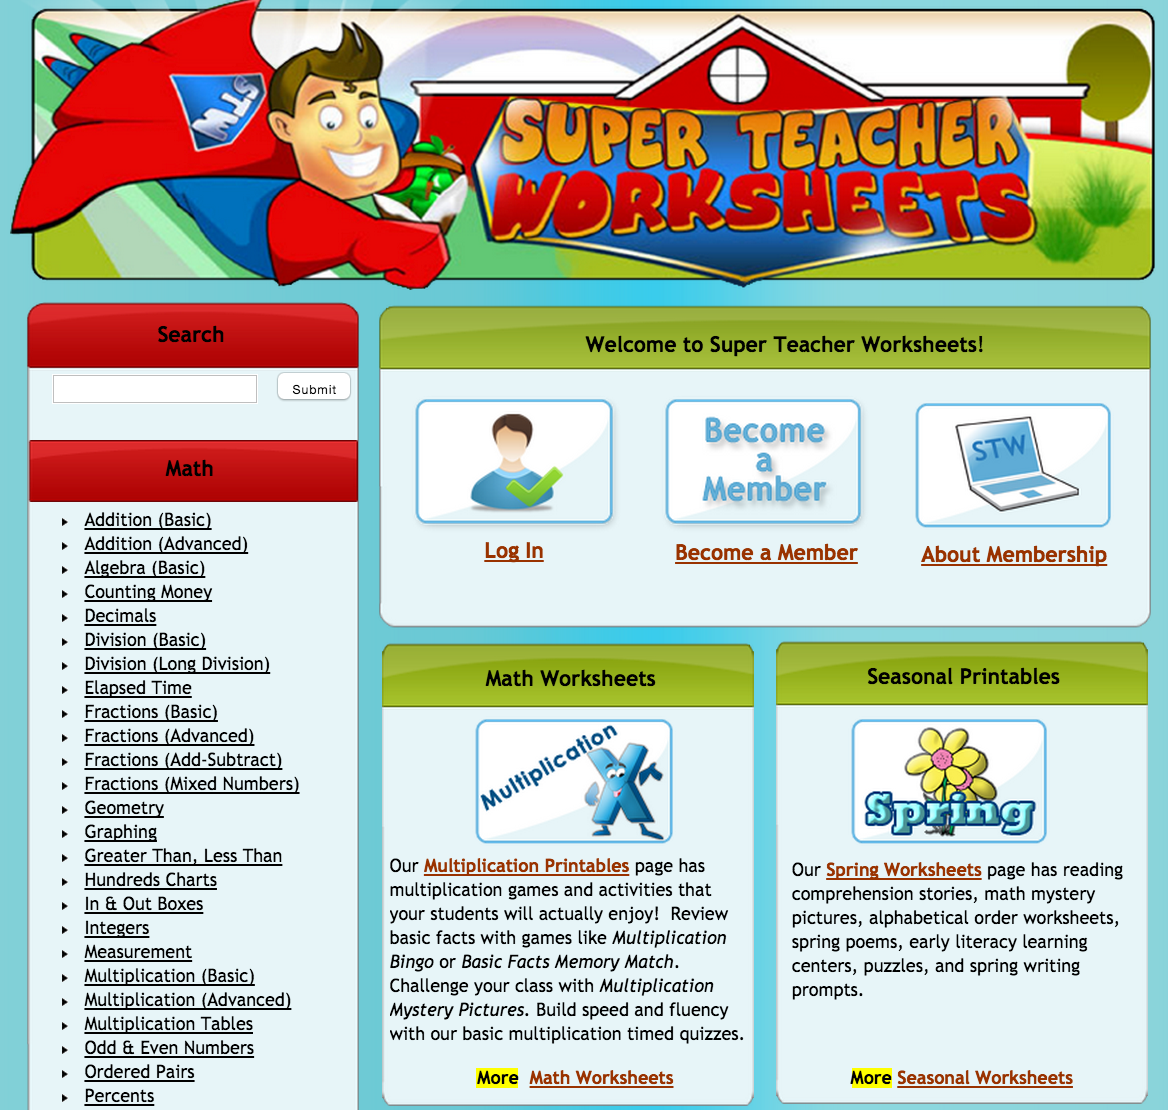 Kevinedutech All Kinds Of Worksheets And Printables You